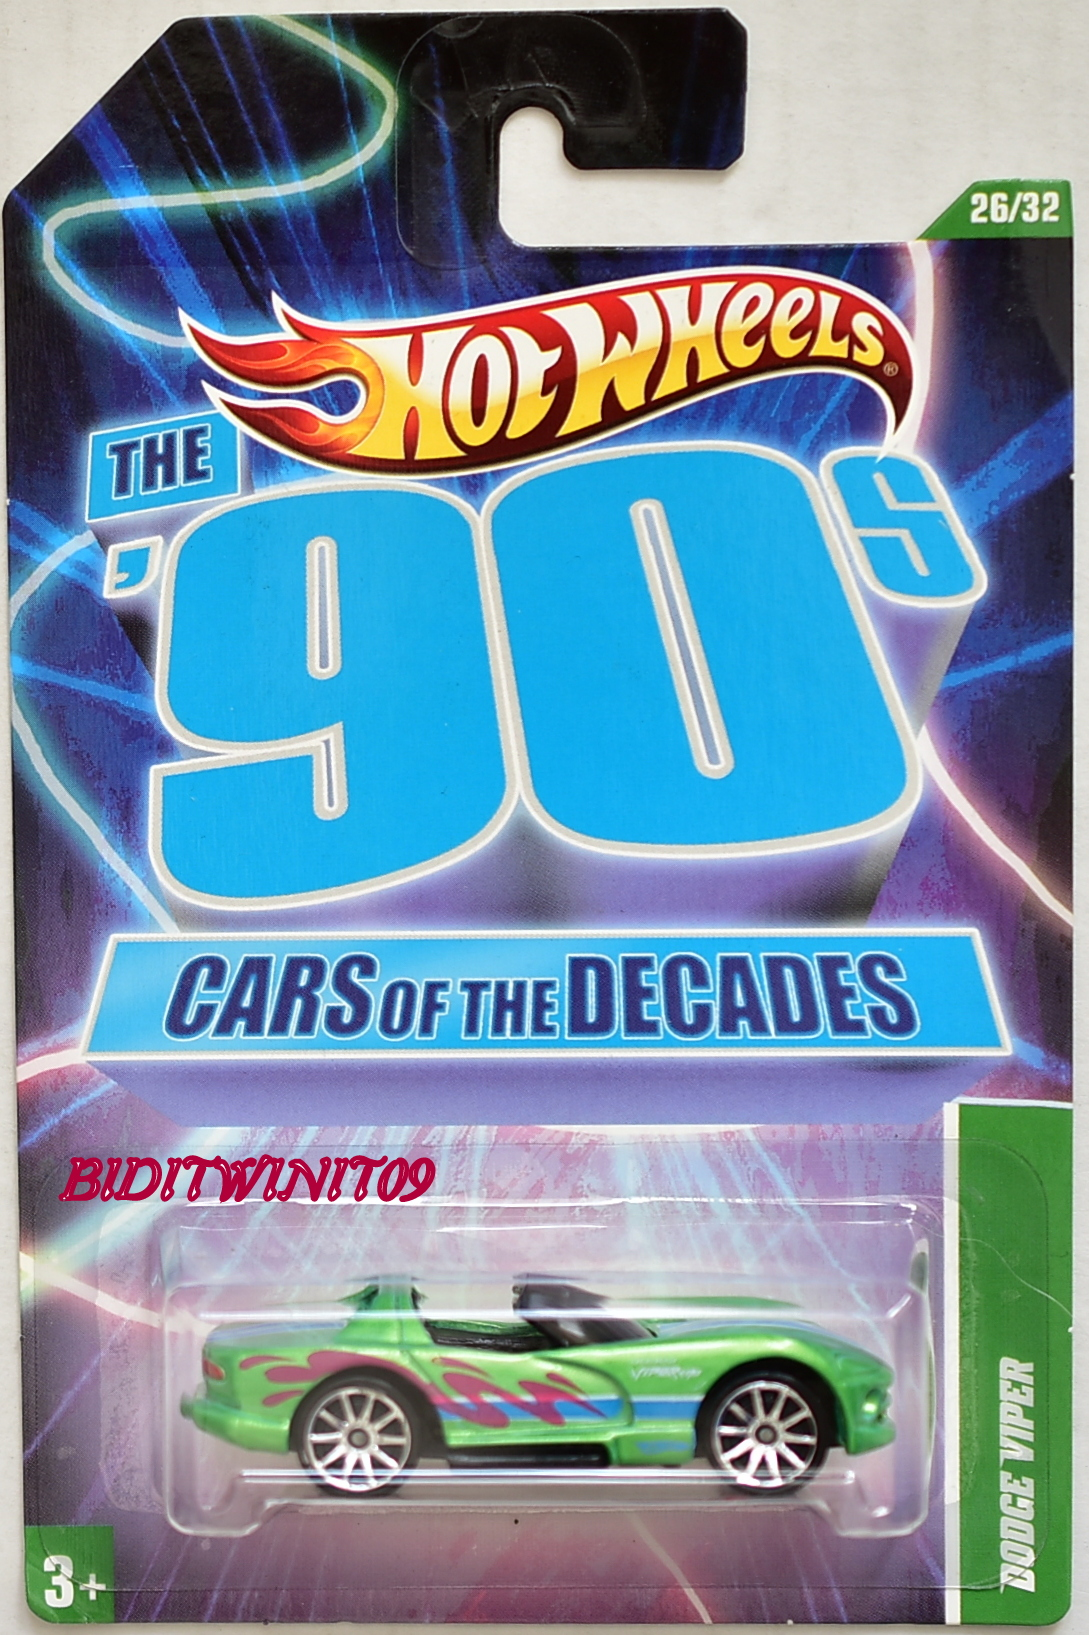 HOT WHEELS THE 90s CARS OF THE DECADES DODGE VIPER GREEN